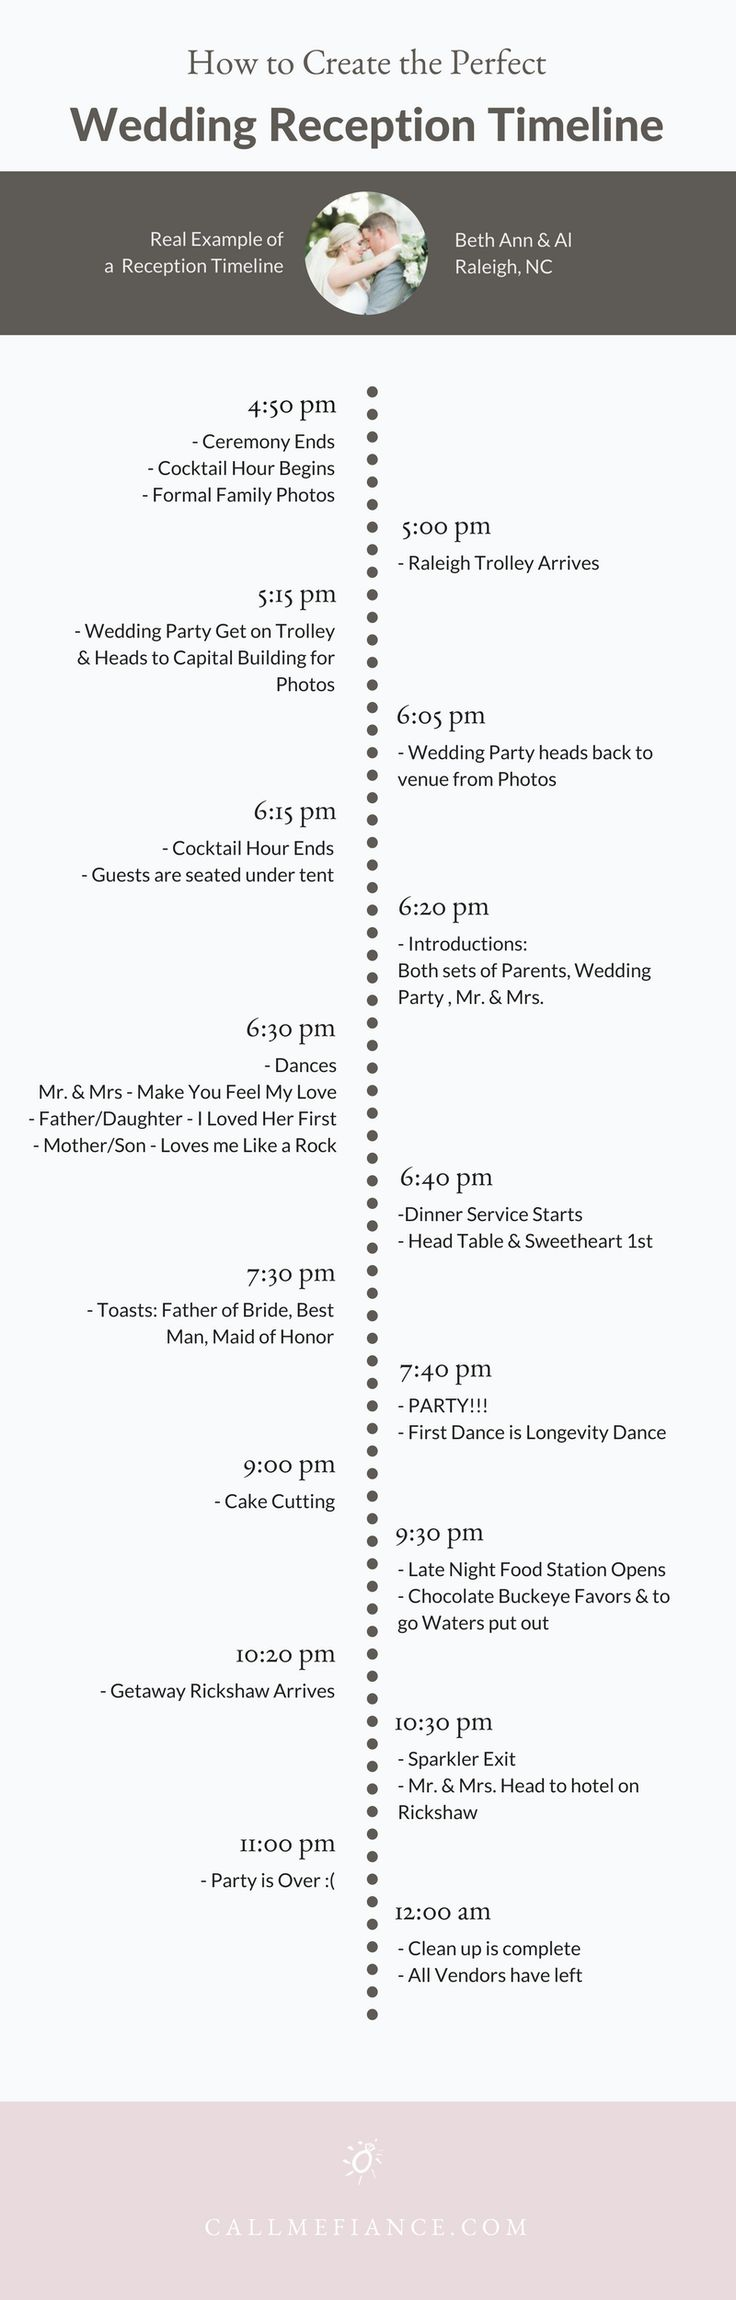 How To Create Your Perfect Wedding Reception Timeline